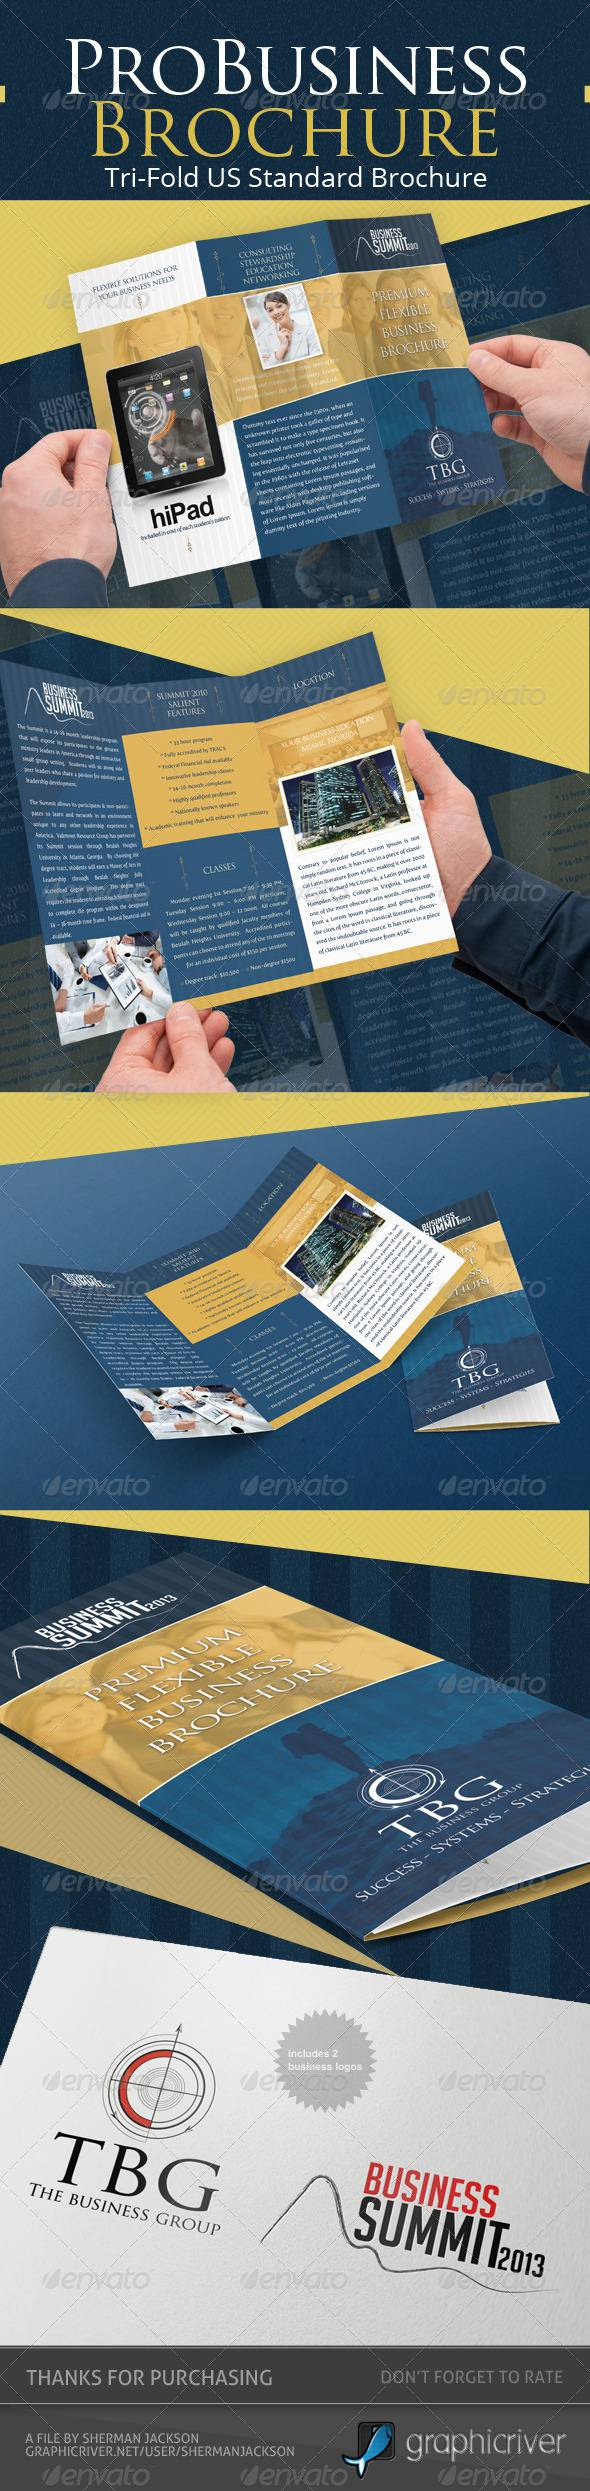 Pro Business Trifold Brochure PSD Template